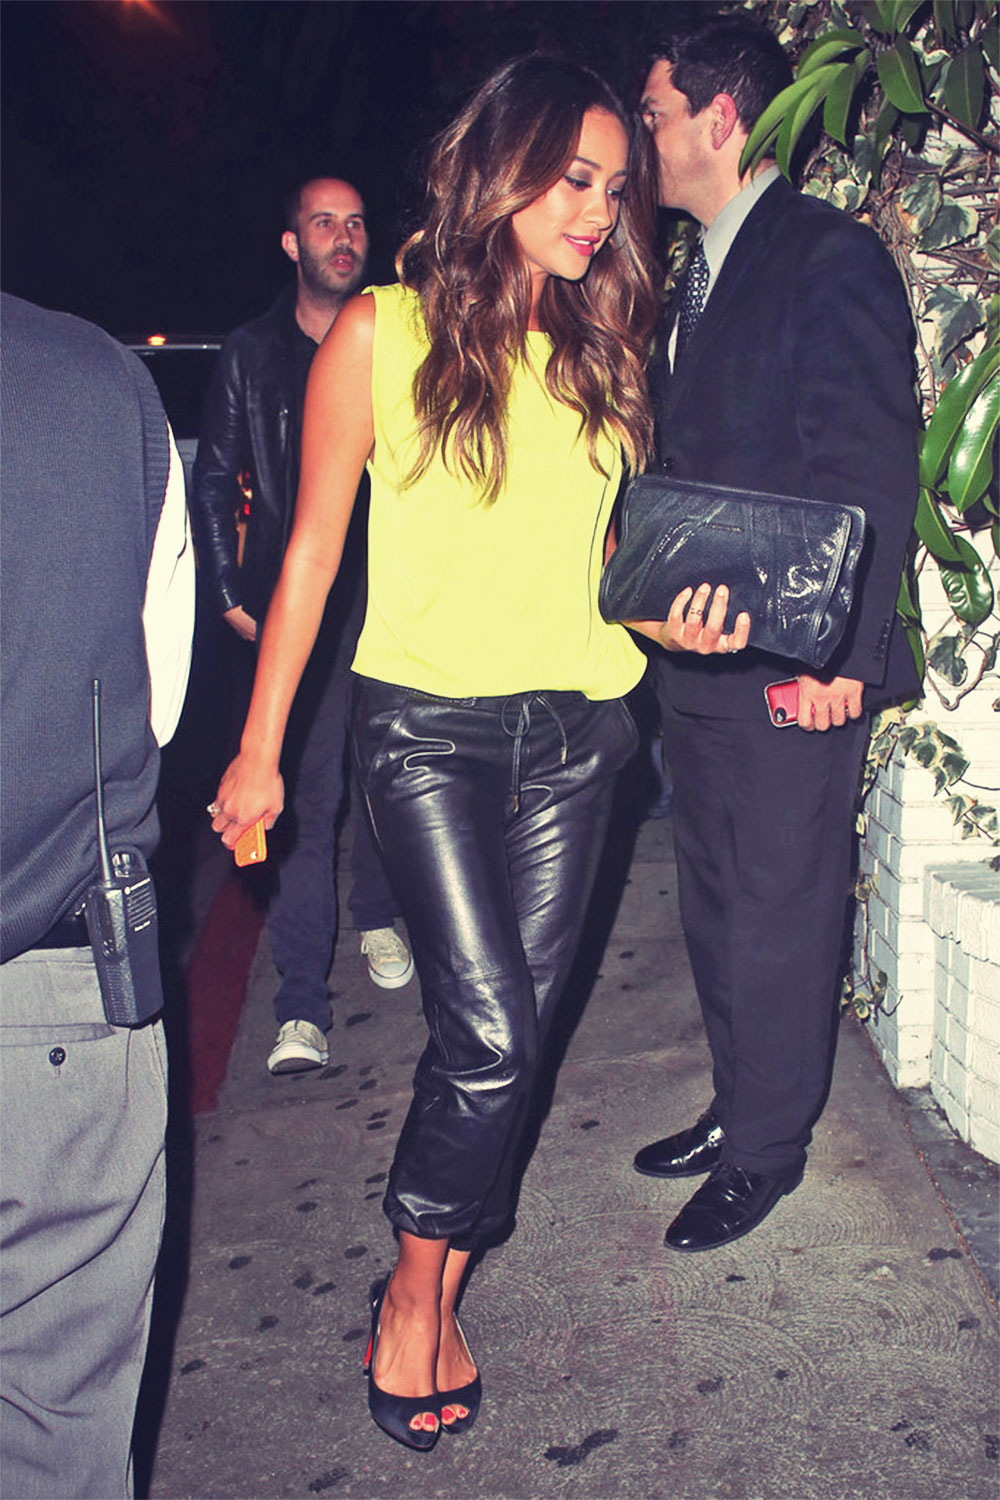 Ashley Benson & Shay Mitchell at the Chateau Marmont